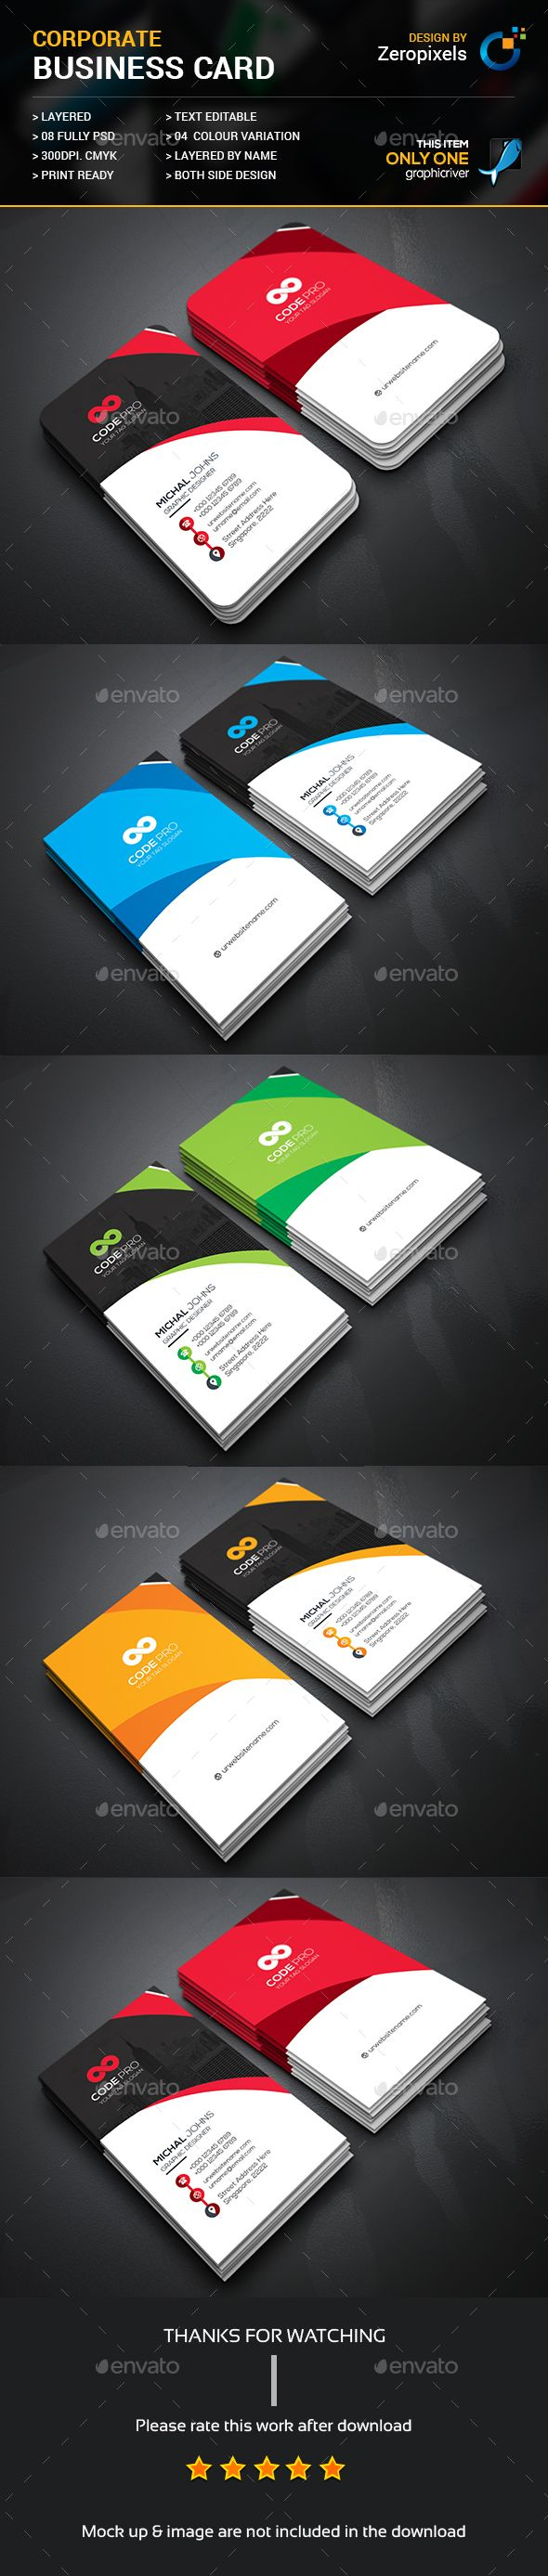 29 best Business Card Design Ispiration images on Pinterest ...